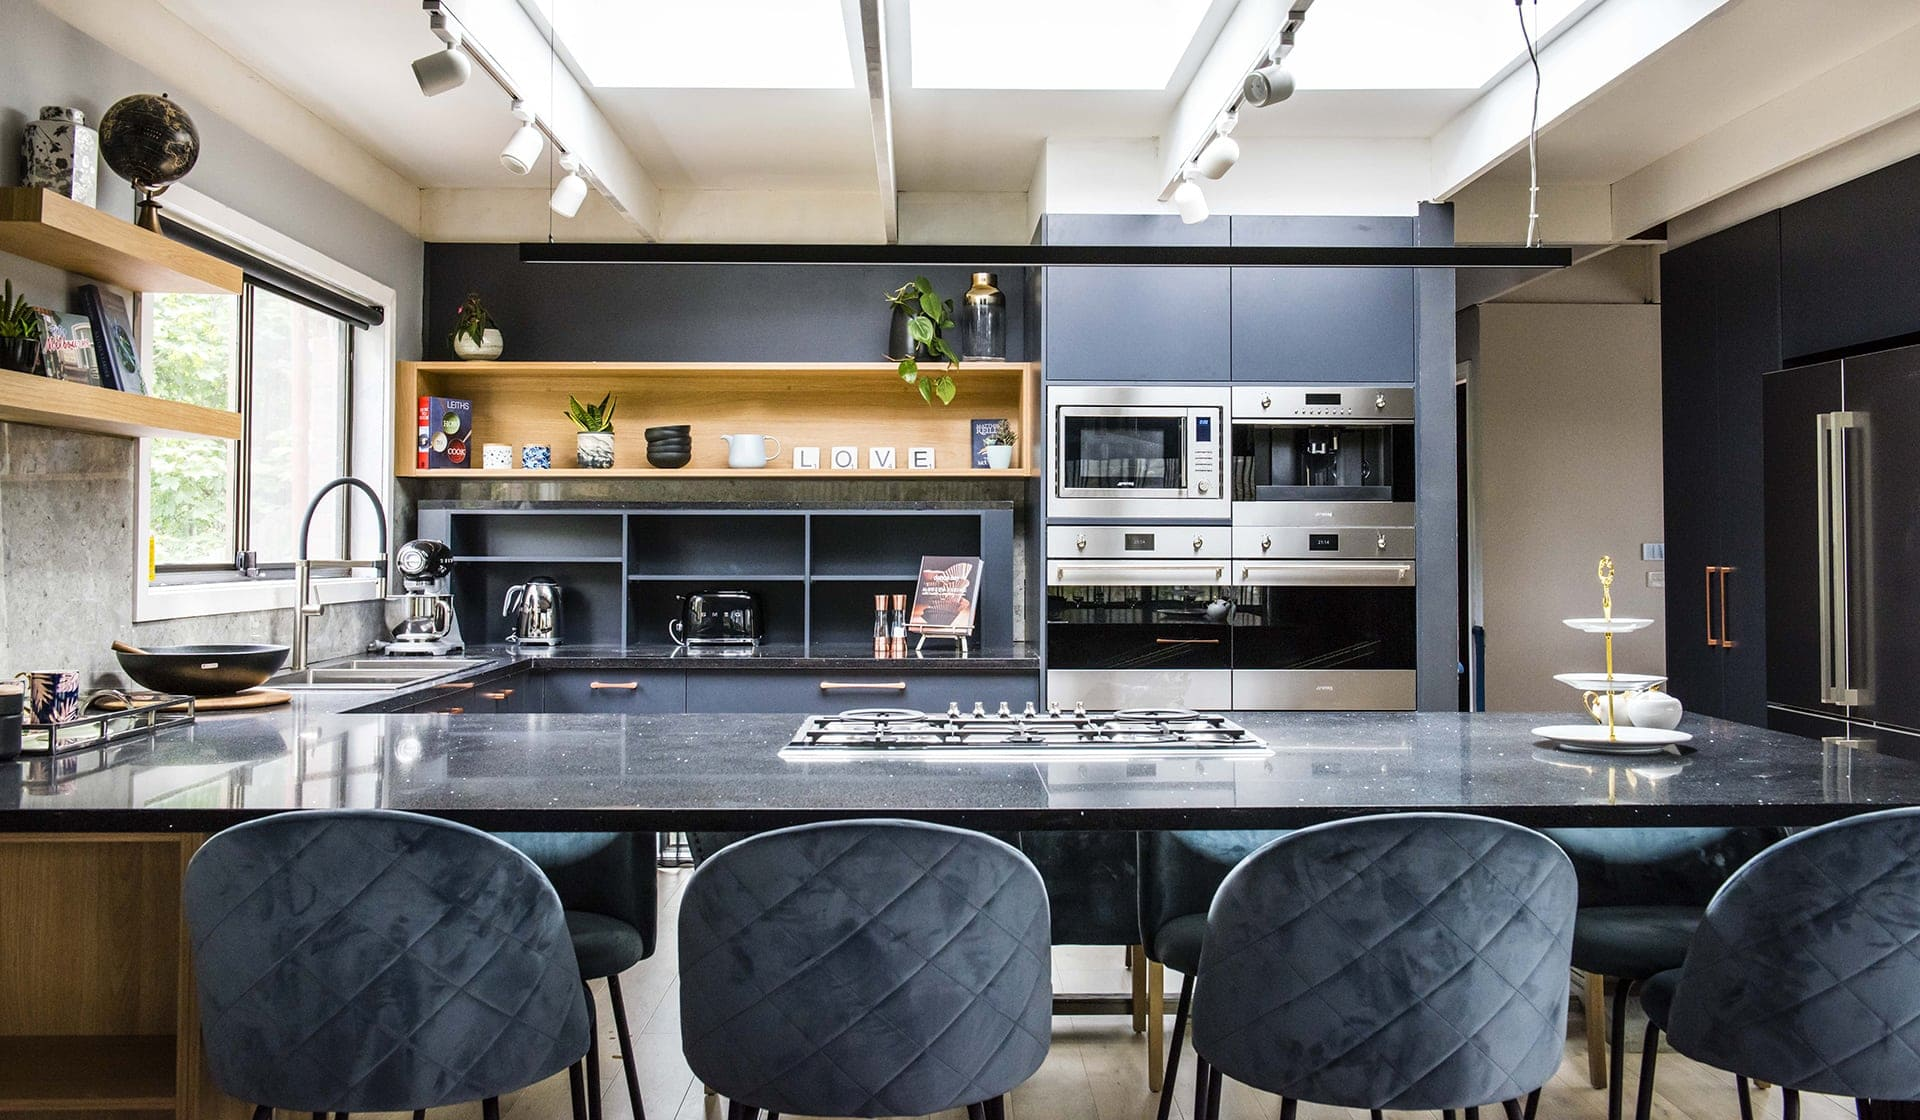 house rules 2019 pete and courtney kitchen with black countertop and blue cabinets